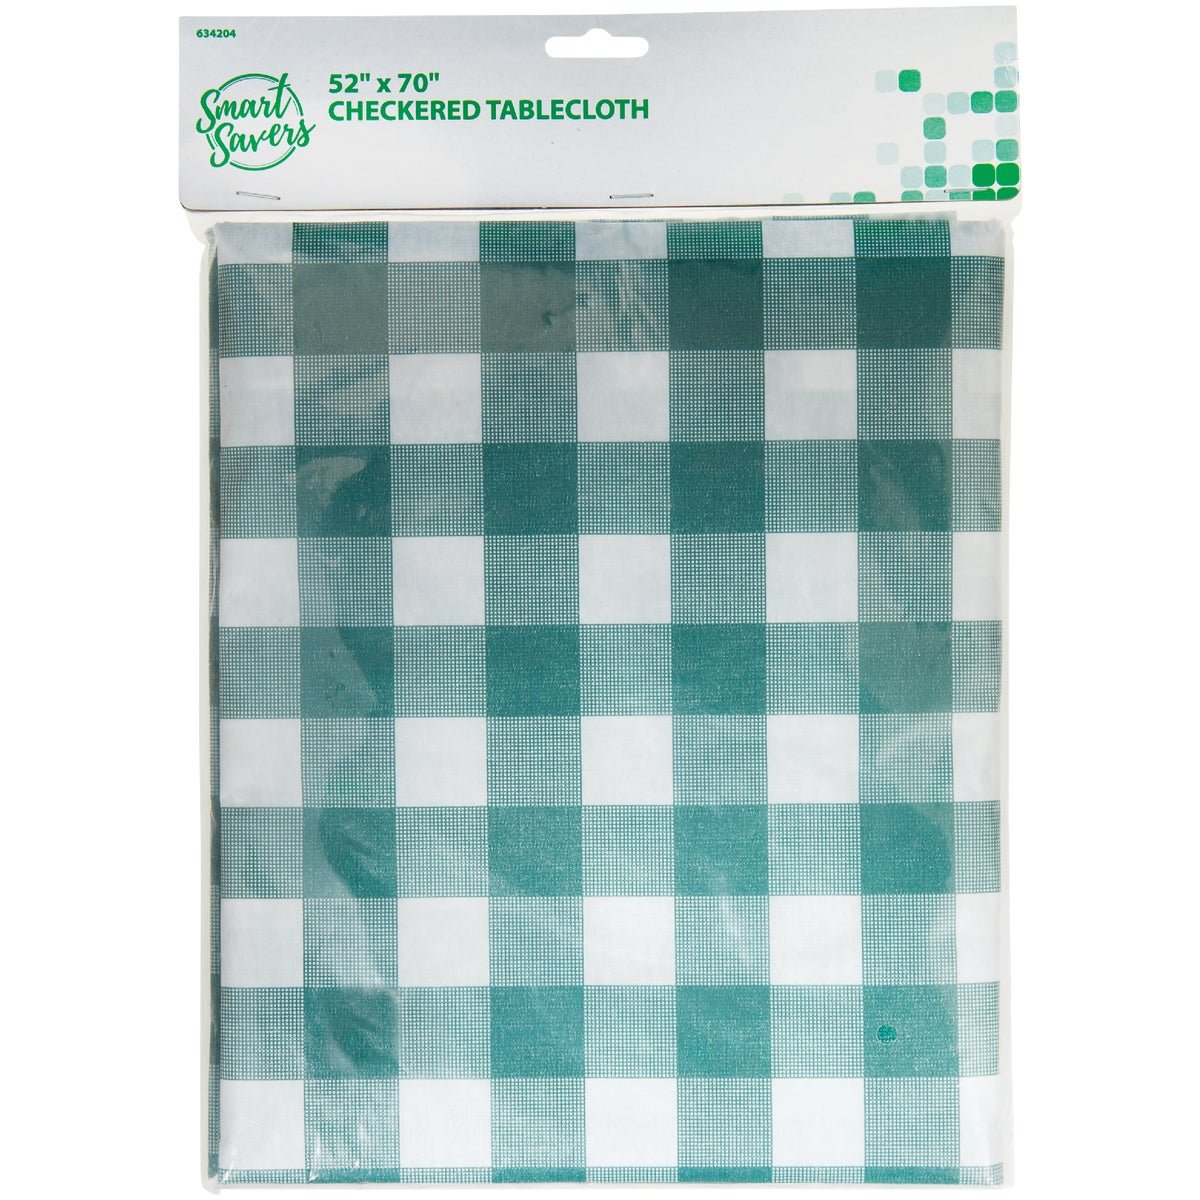 52X70 CHECKER TABLECLOTH - HJ019 by Do it Best